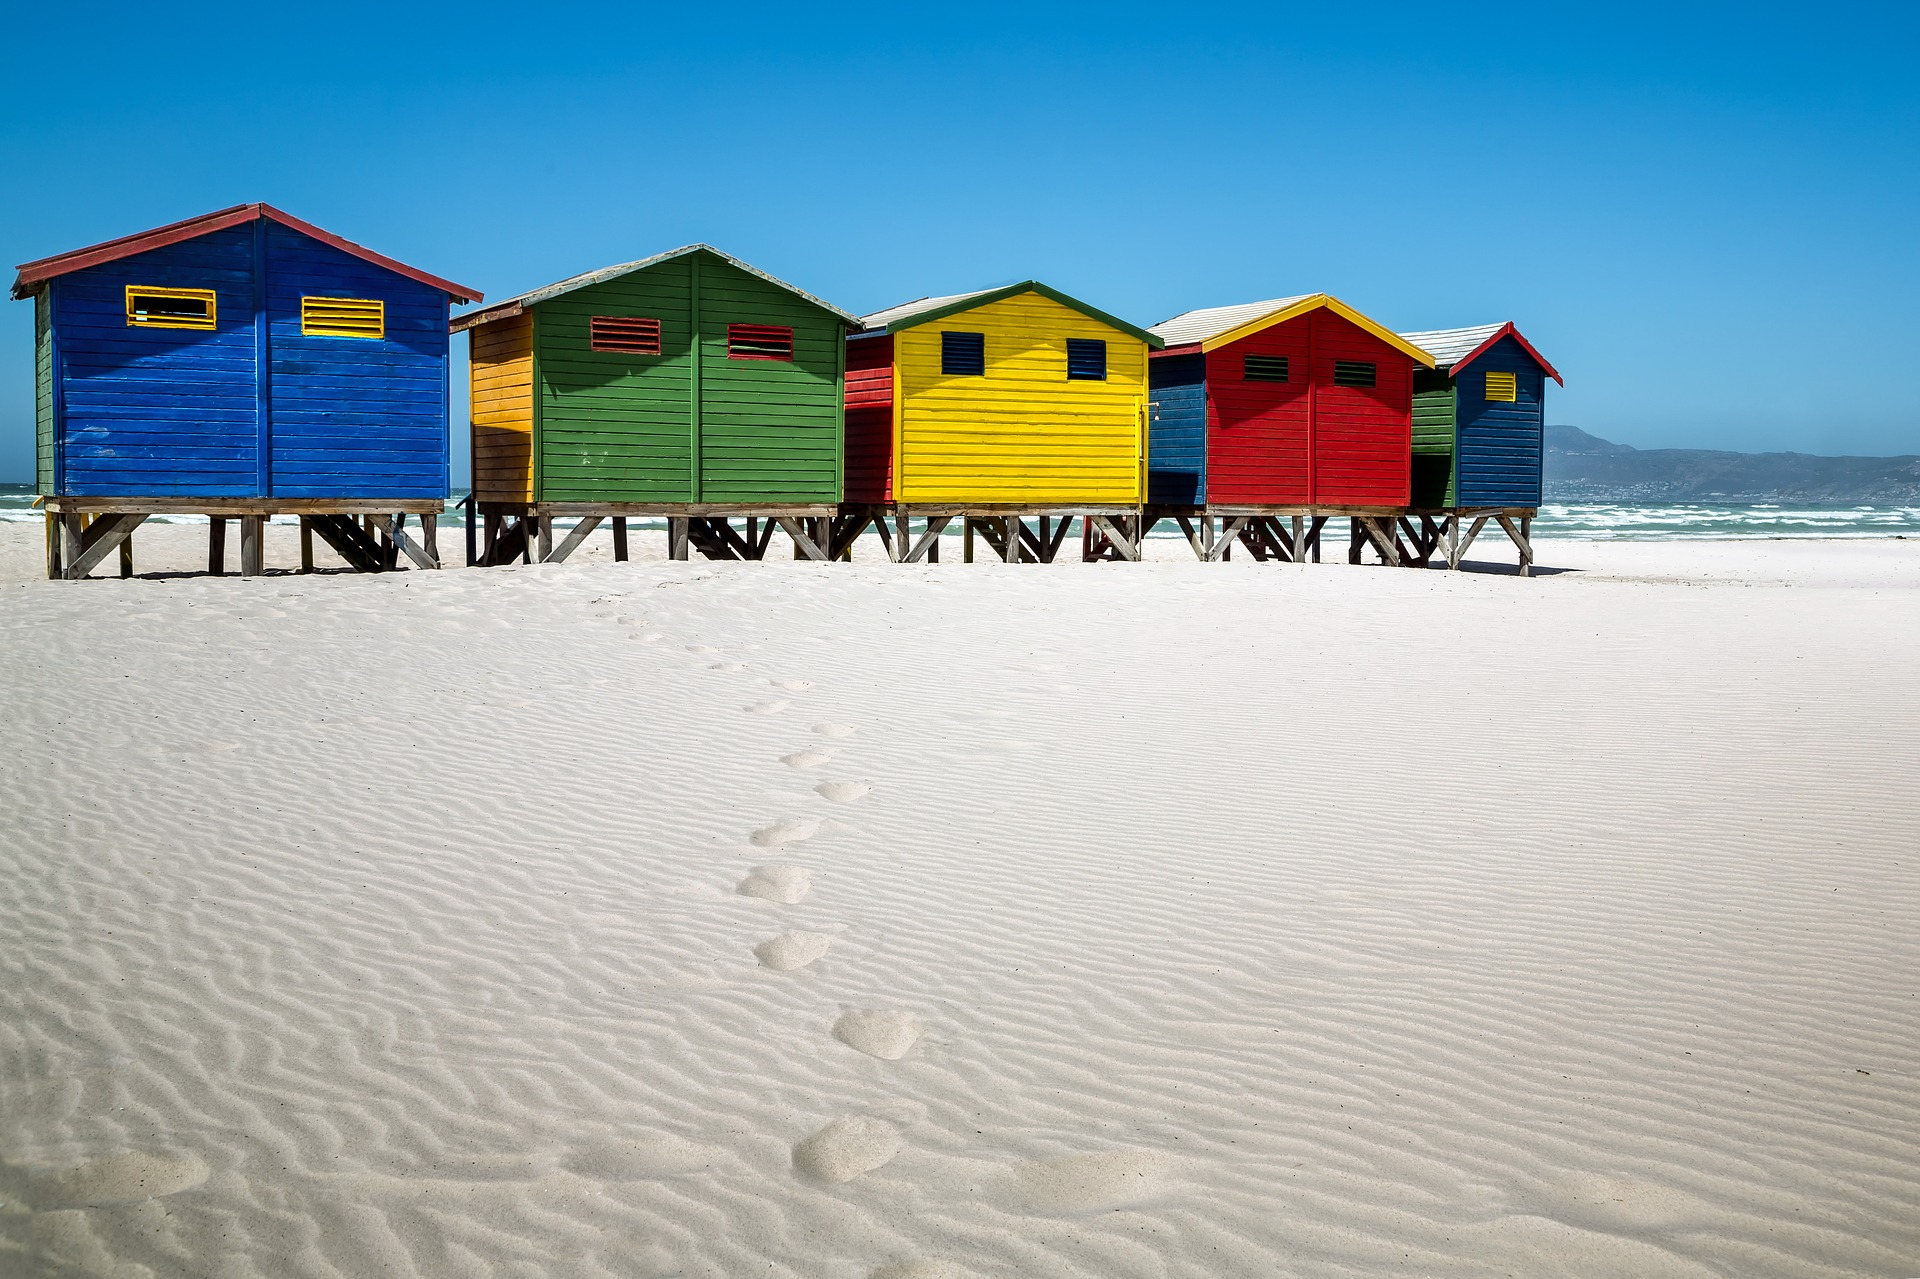 Best Beaches In Cape Town The Travelling Pinoys - 9 things to see and do in muizenberg beach